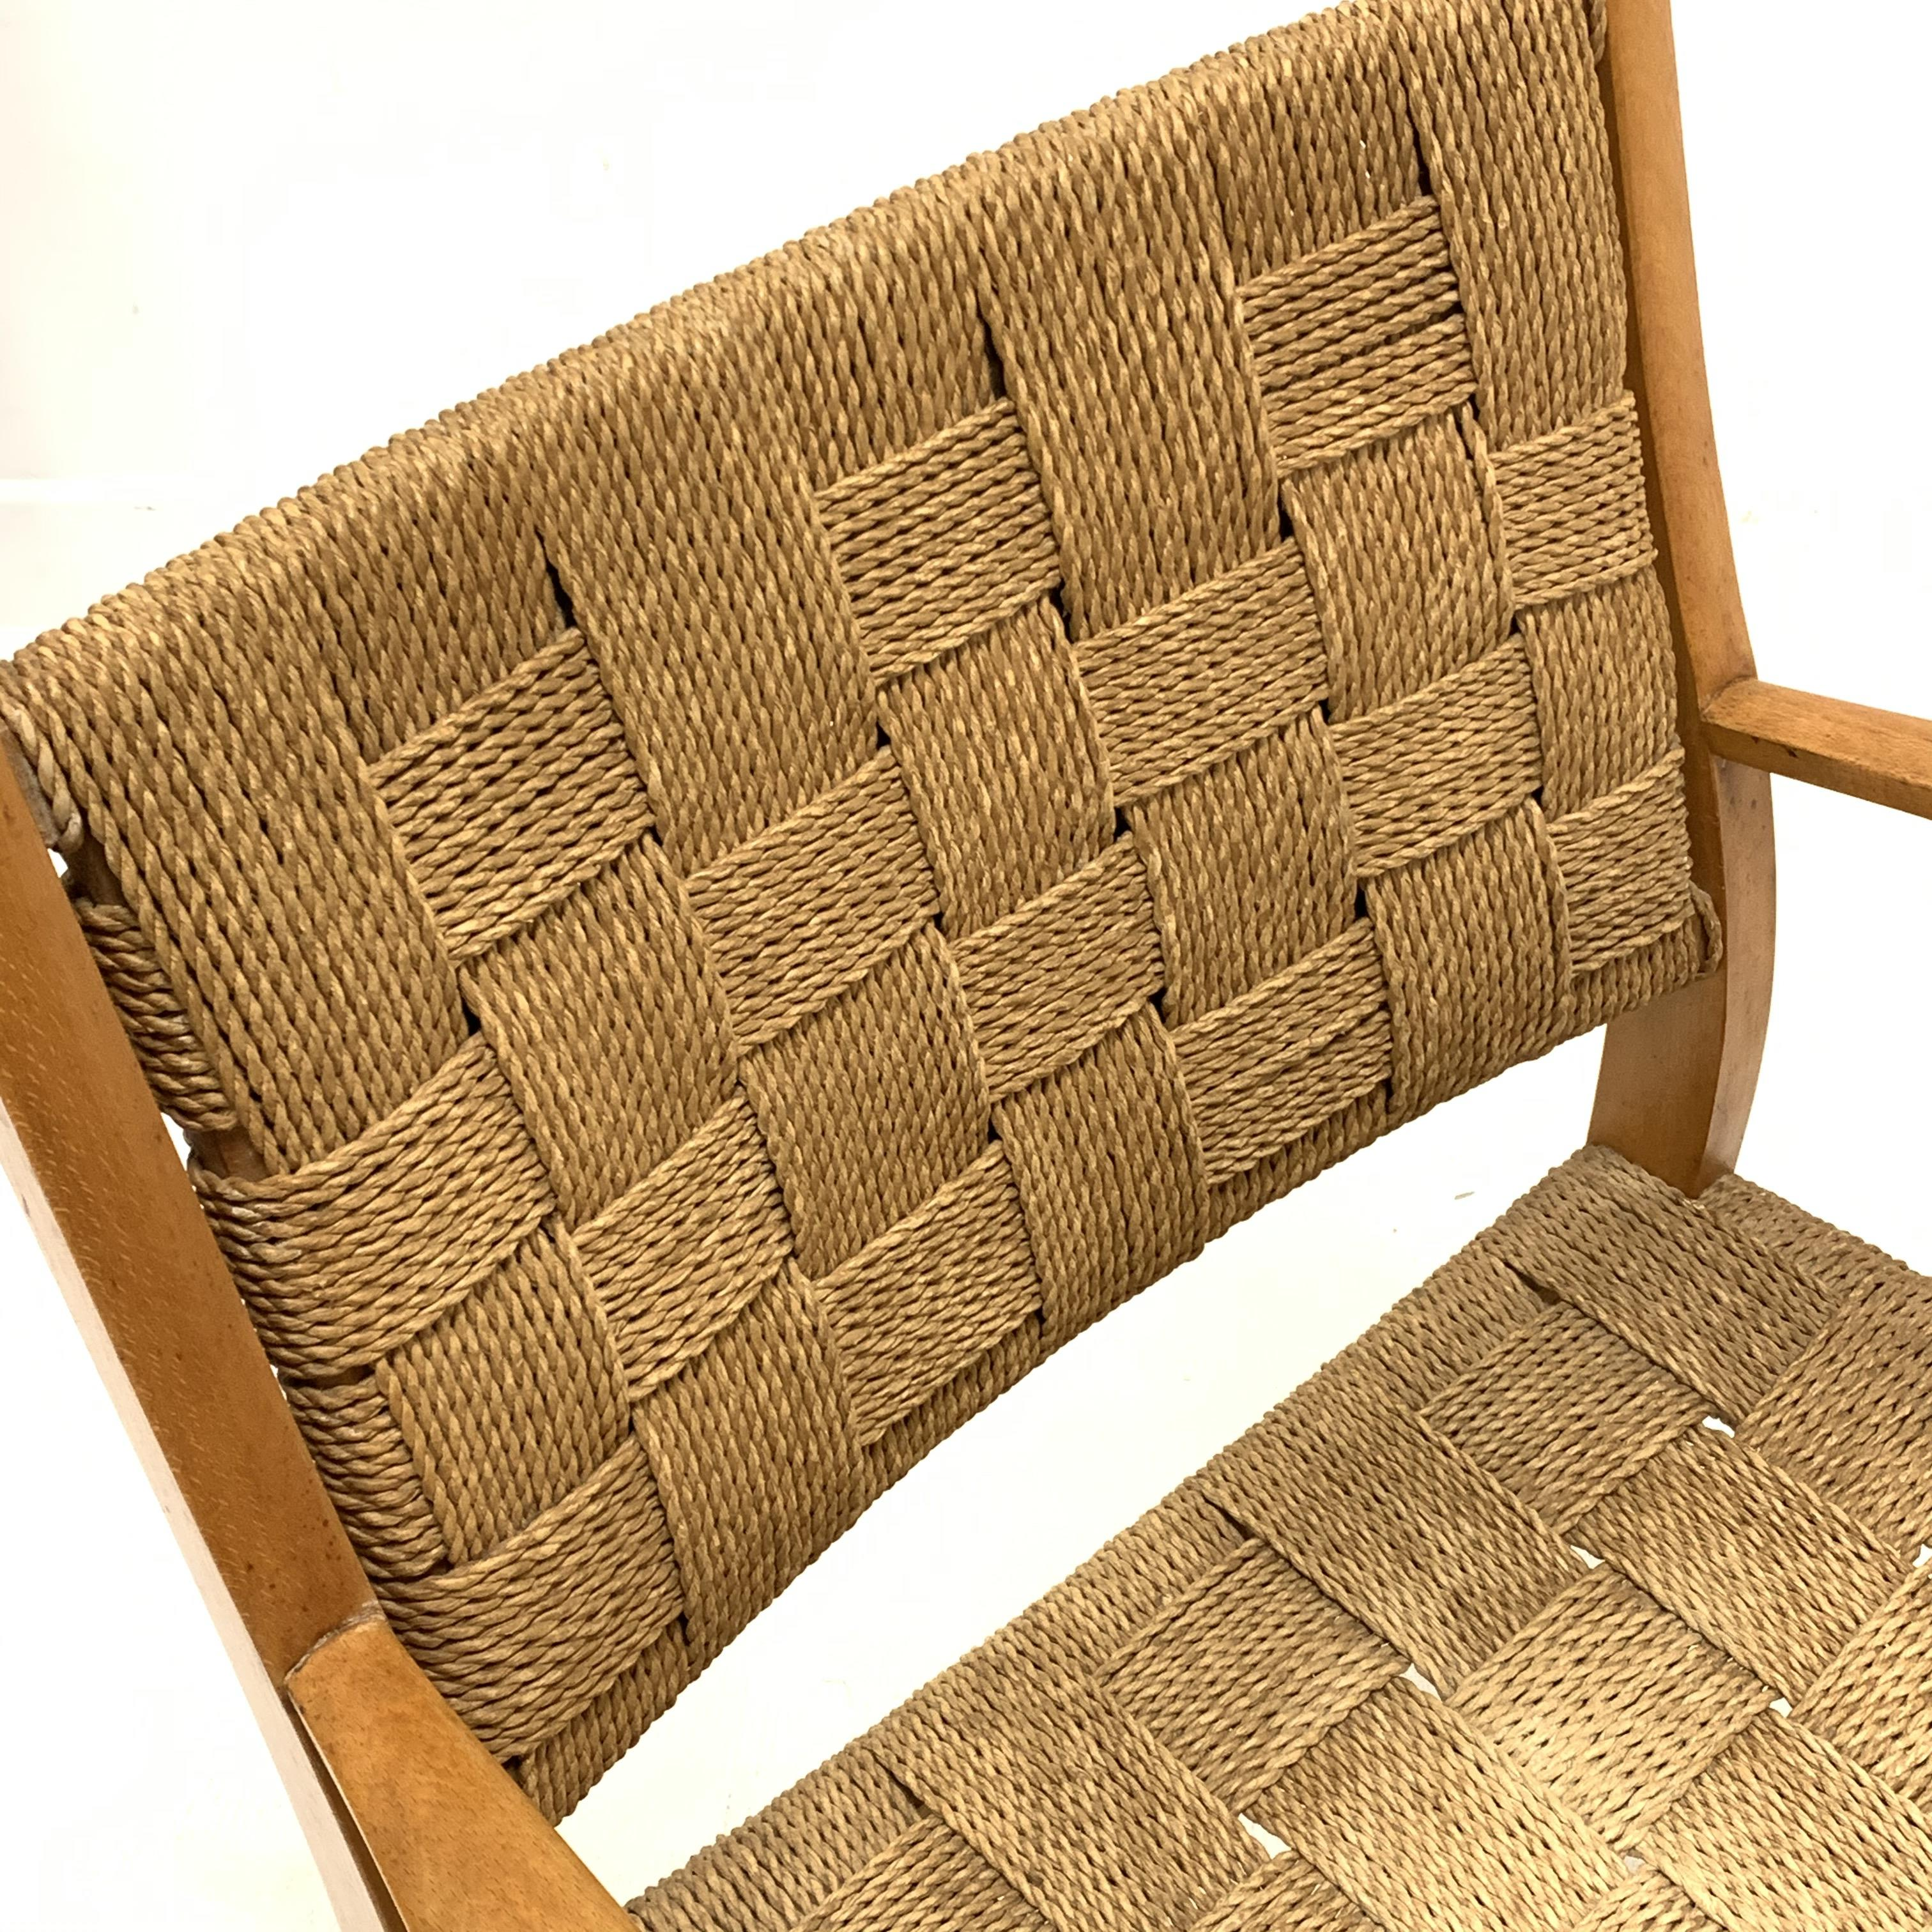 Attributed to Frits Schlegel - Danish beech and cord lounge chair, circa. 1940s, W60cm - Image 4 of 5